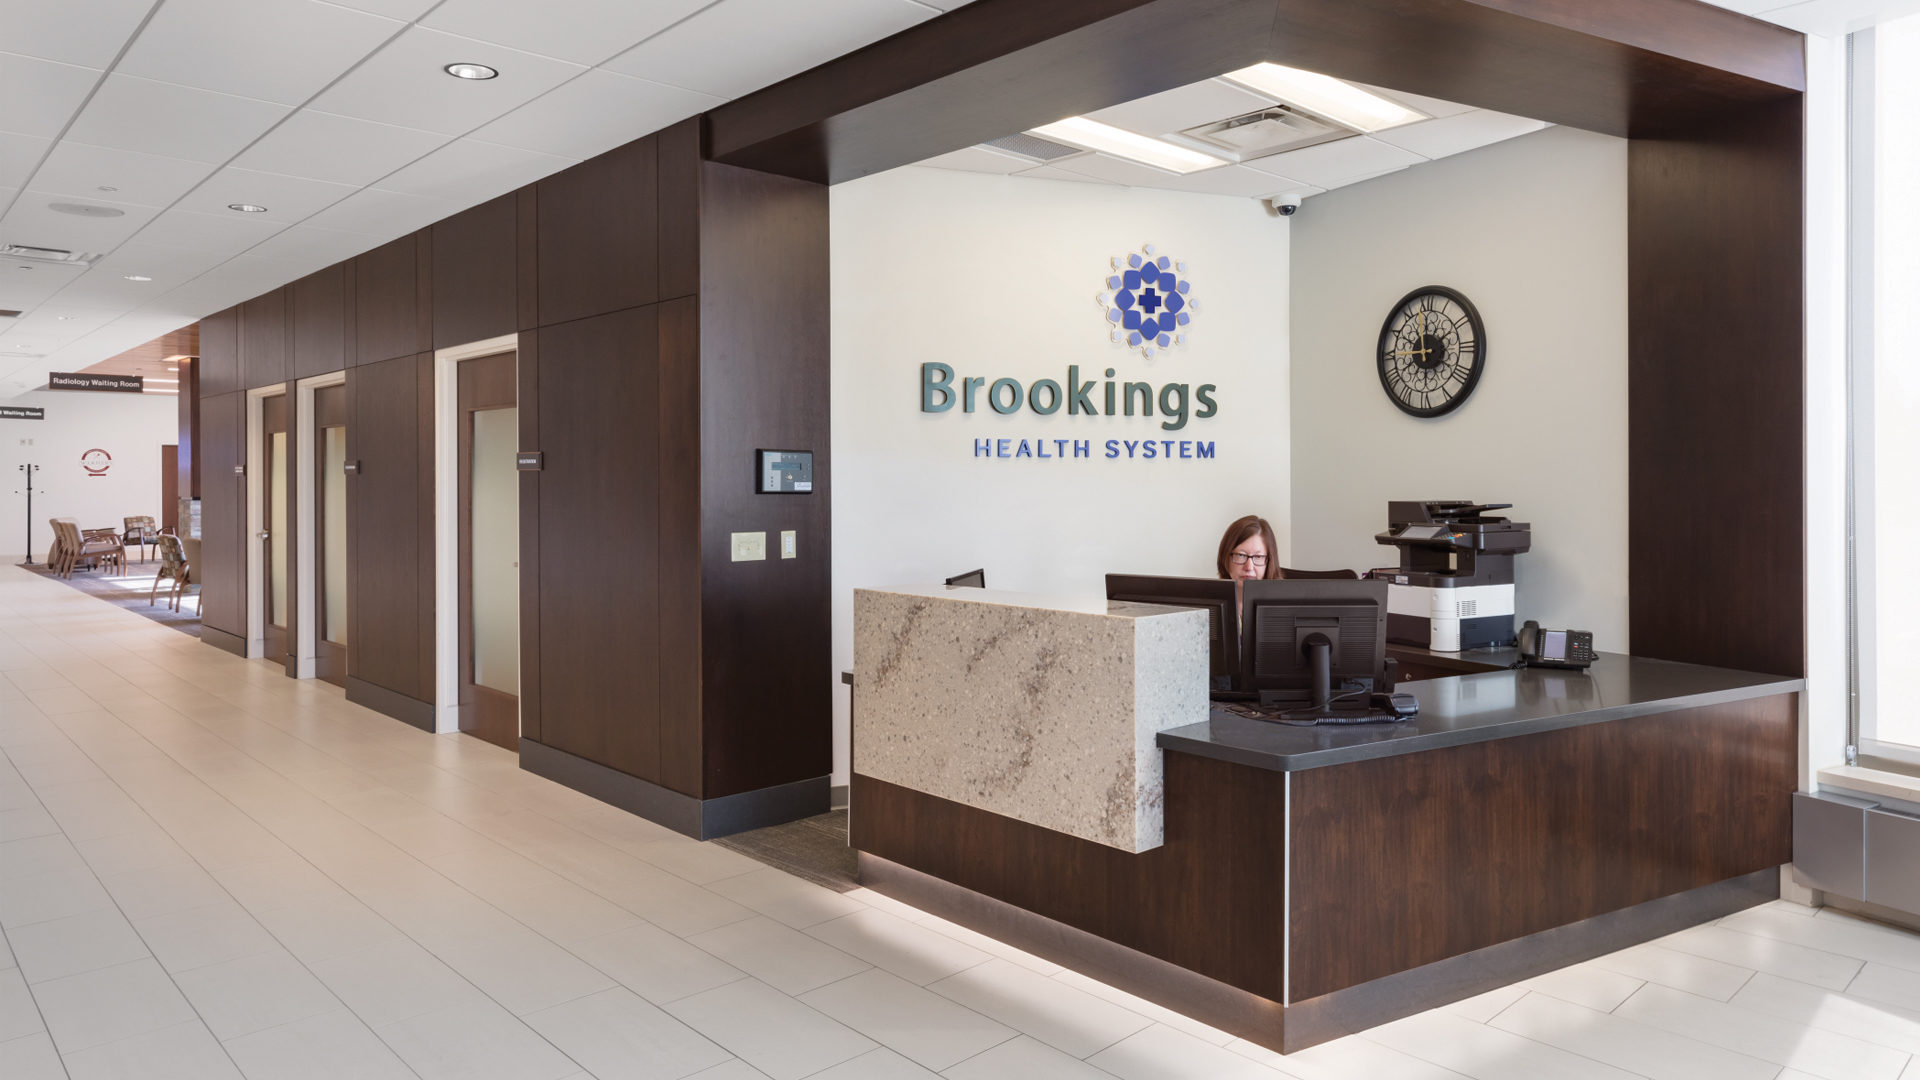 Brookings Hospital Addition and Renovation Interior Reception Desk